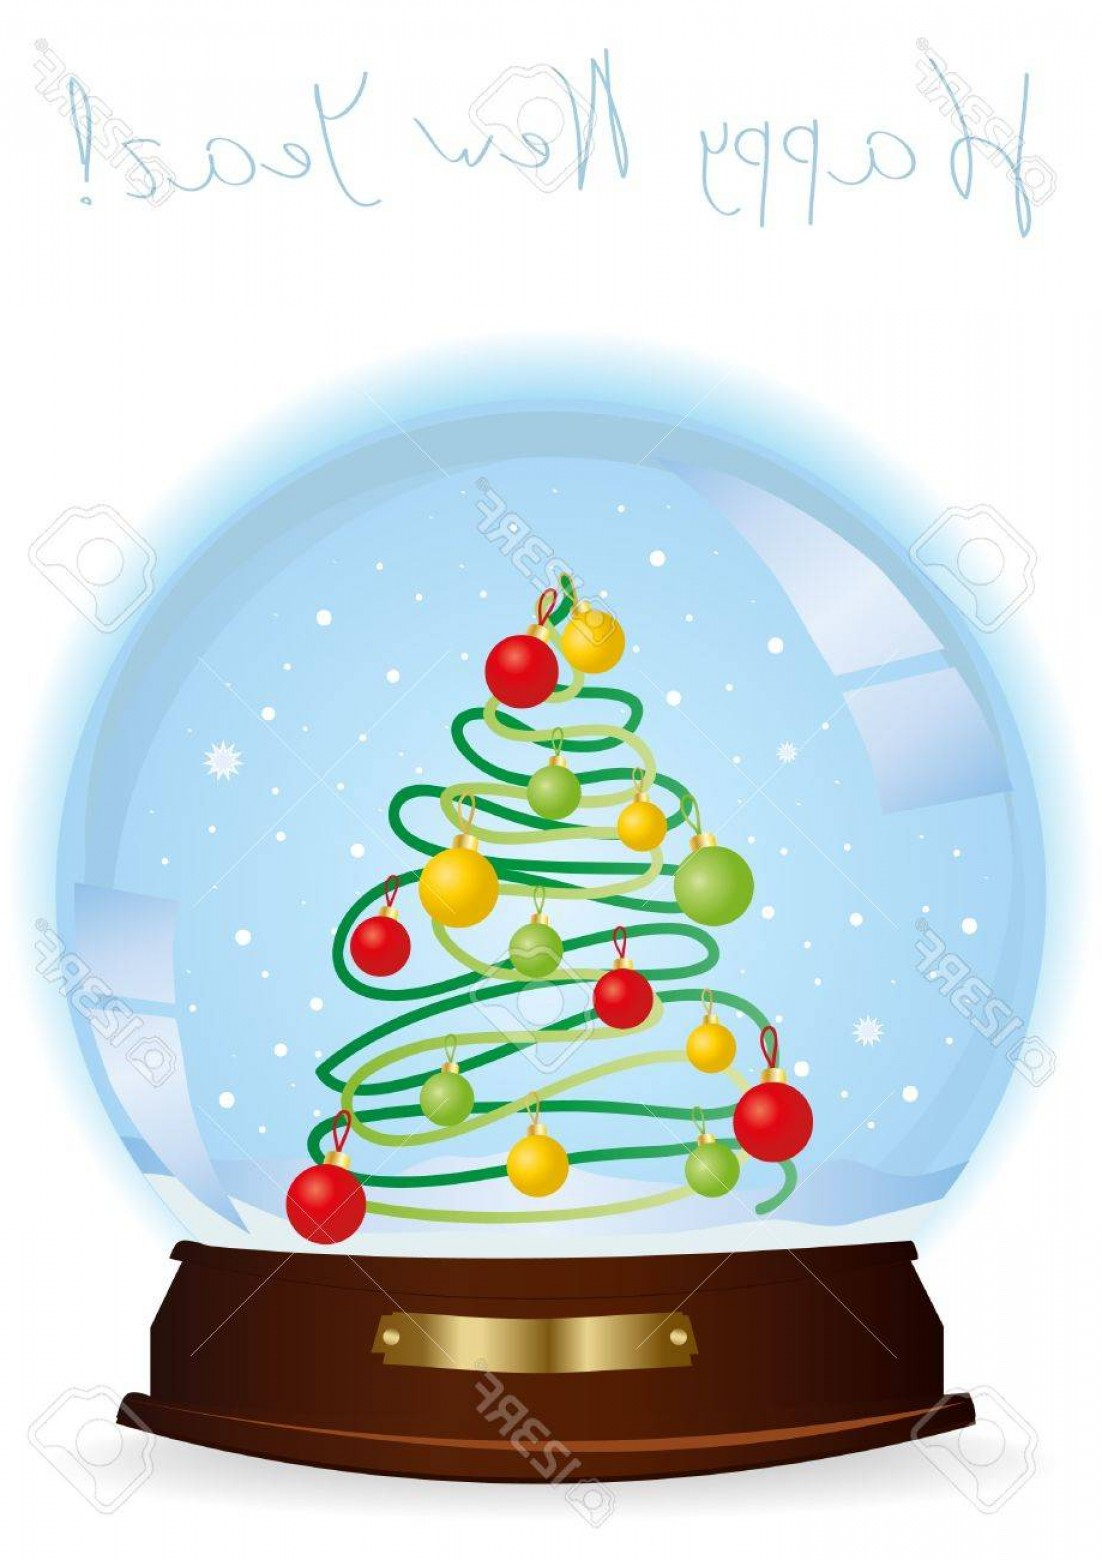 3 Glass Christmas Bulb Vector: Photoillustration Of A Snow Globe With A Decorated Christmas Tree And The Inscription Above